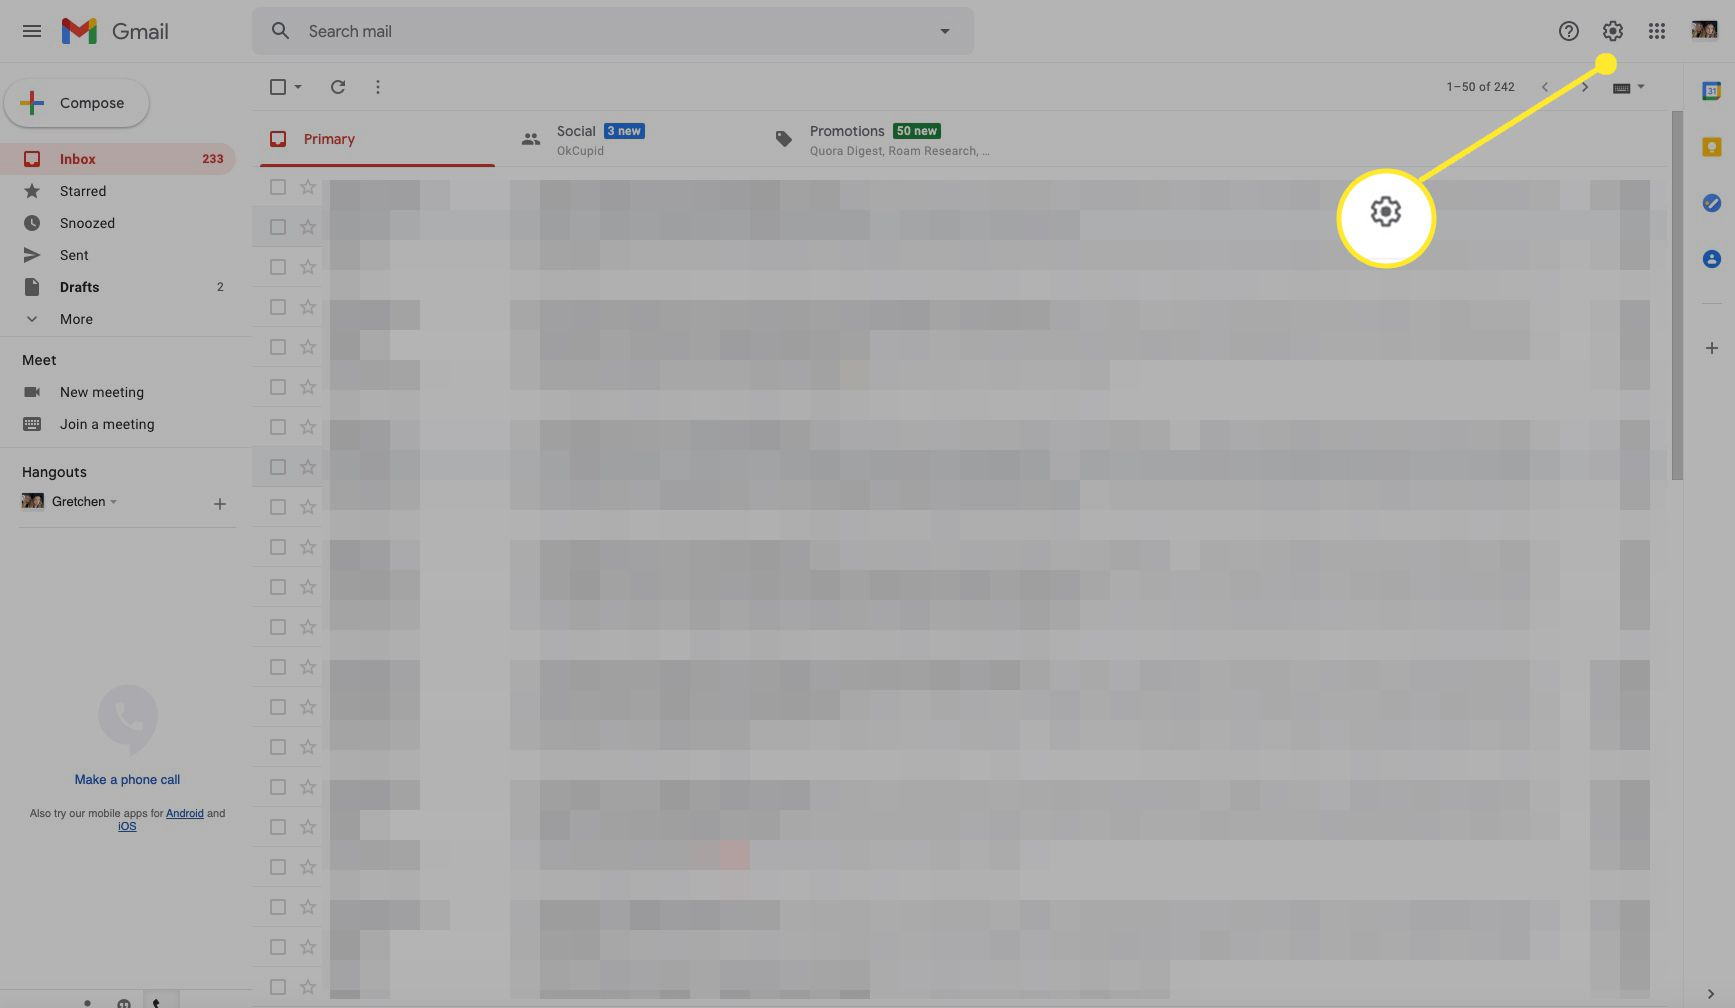 Gmail inbox screen with Settings gear icon highlighted